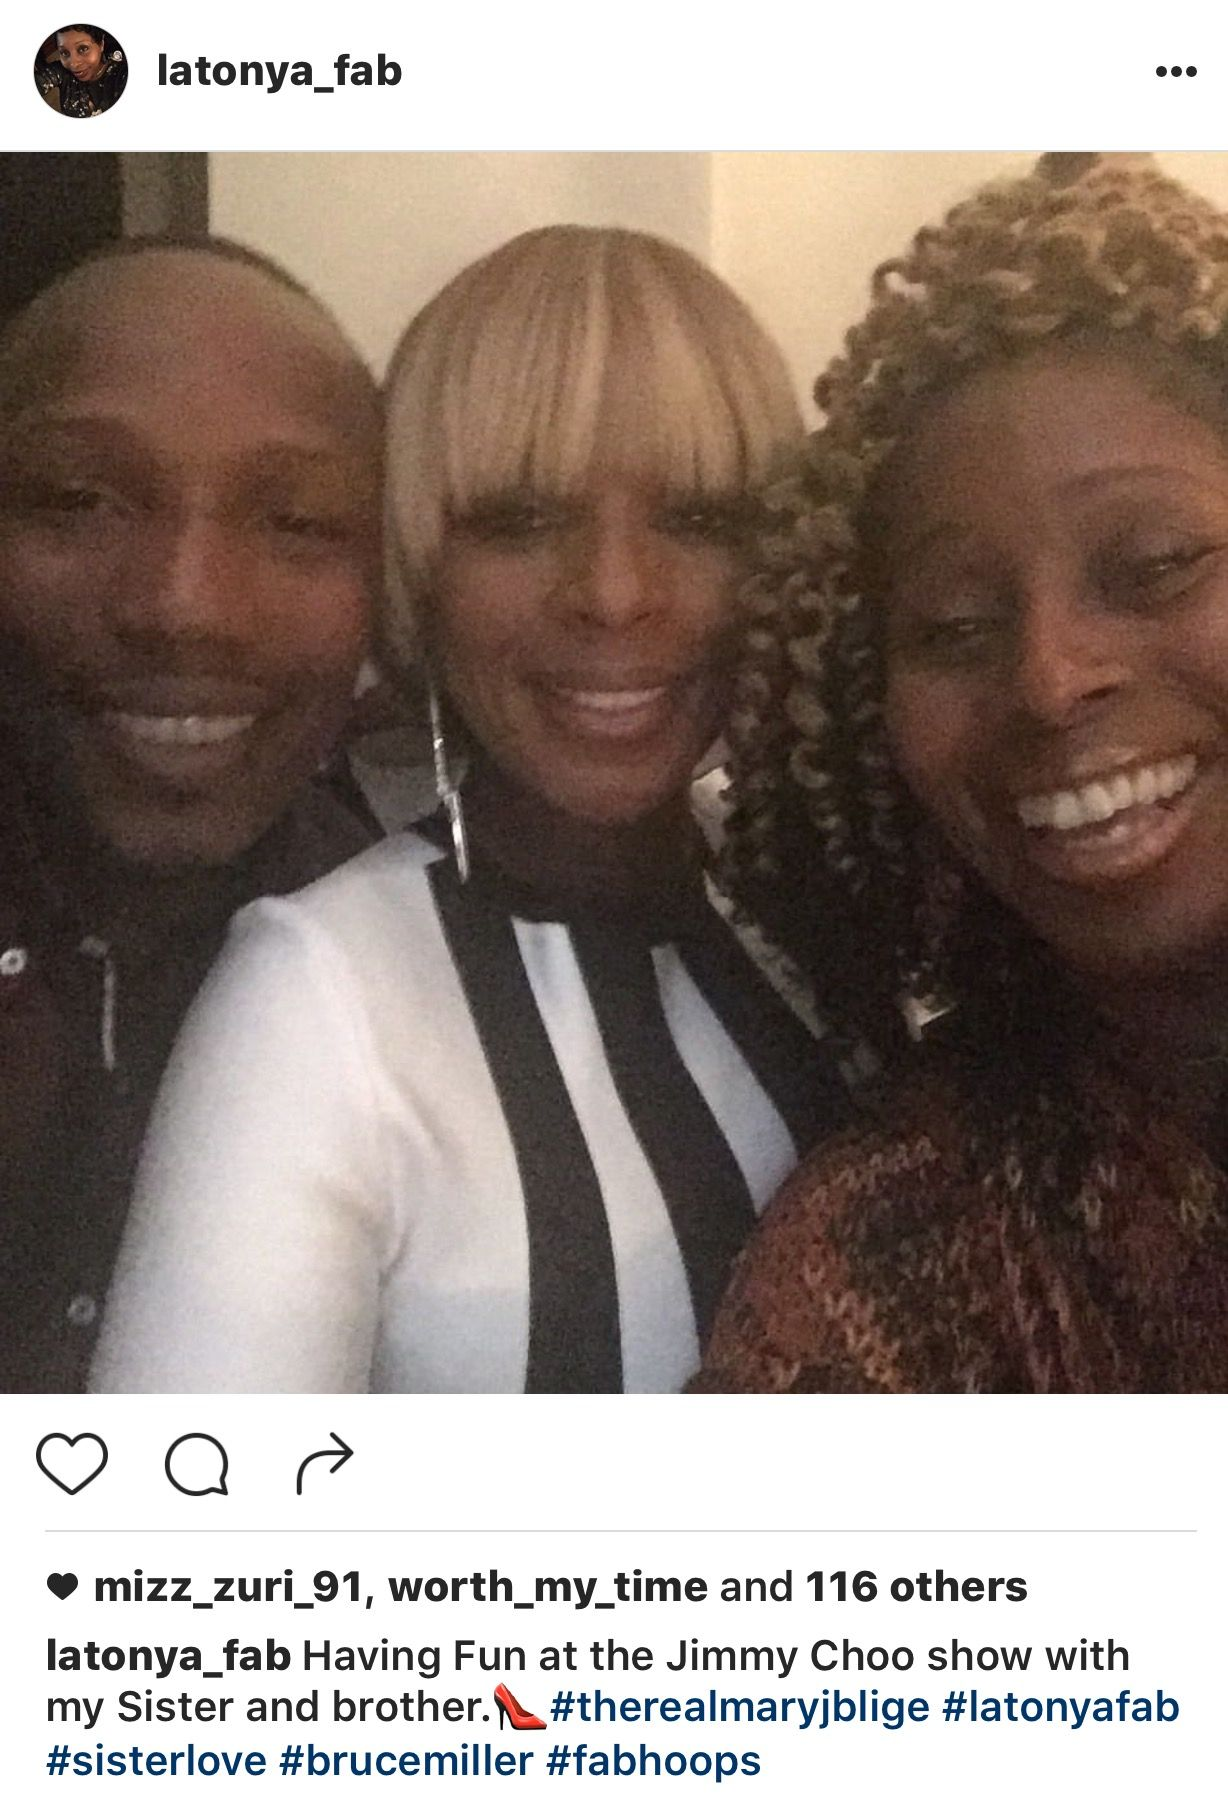 Pin by KAREN MENDENHALL on Mary J  Blige | Mary j, Queen mary, Big sis